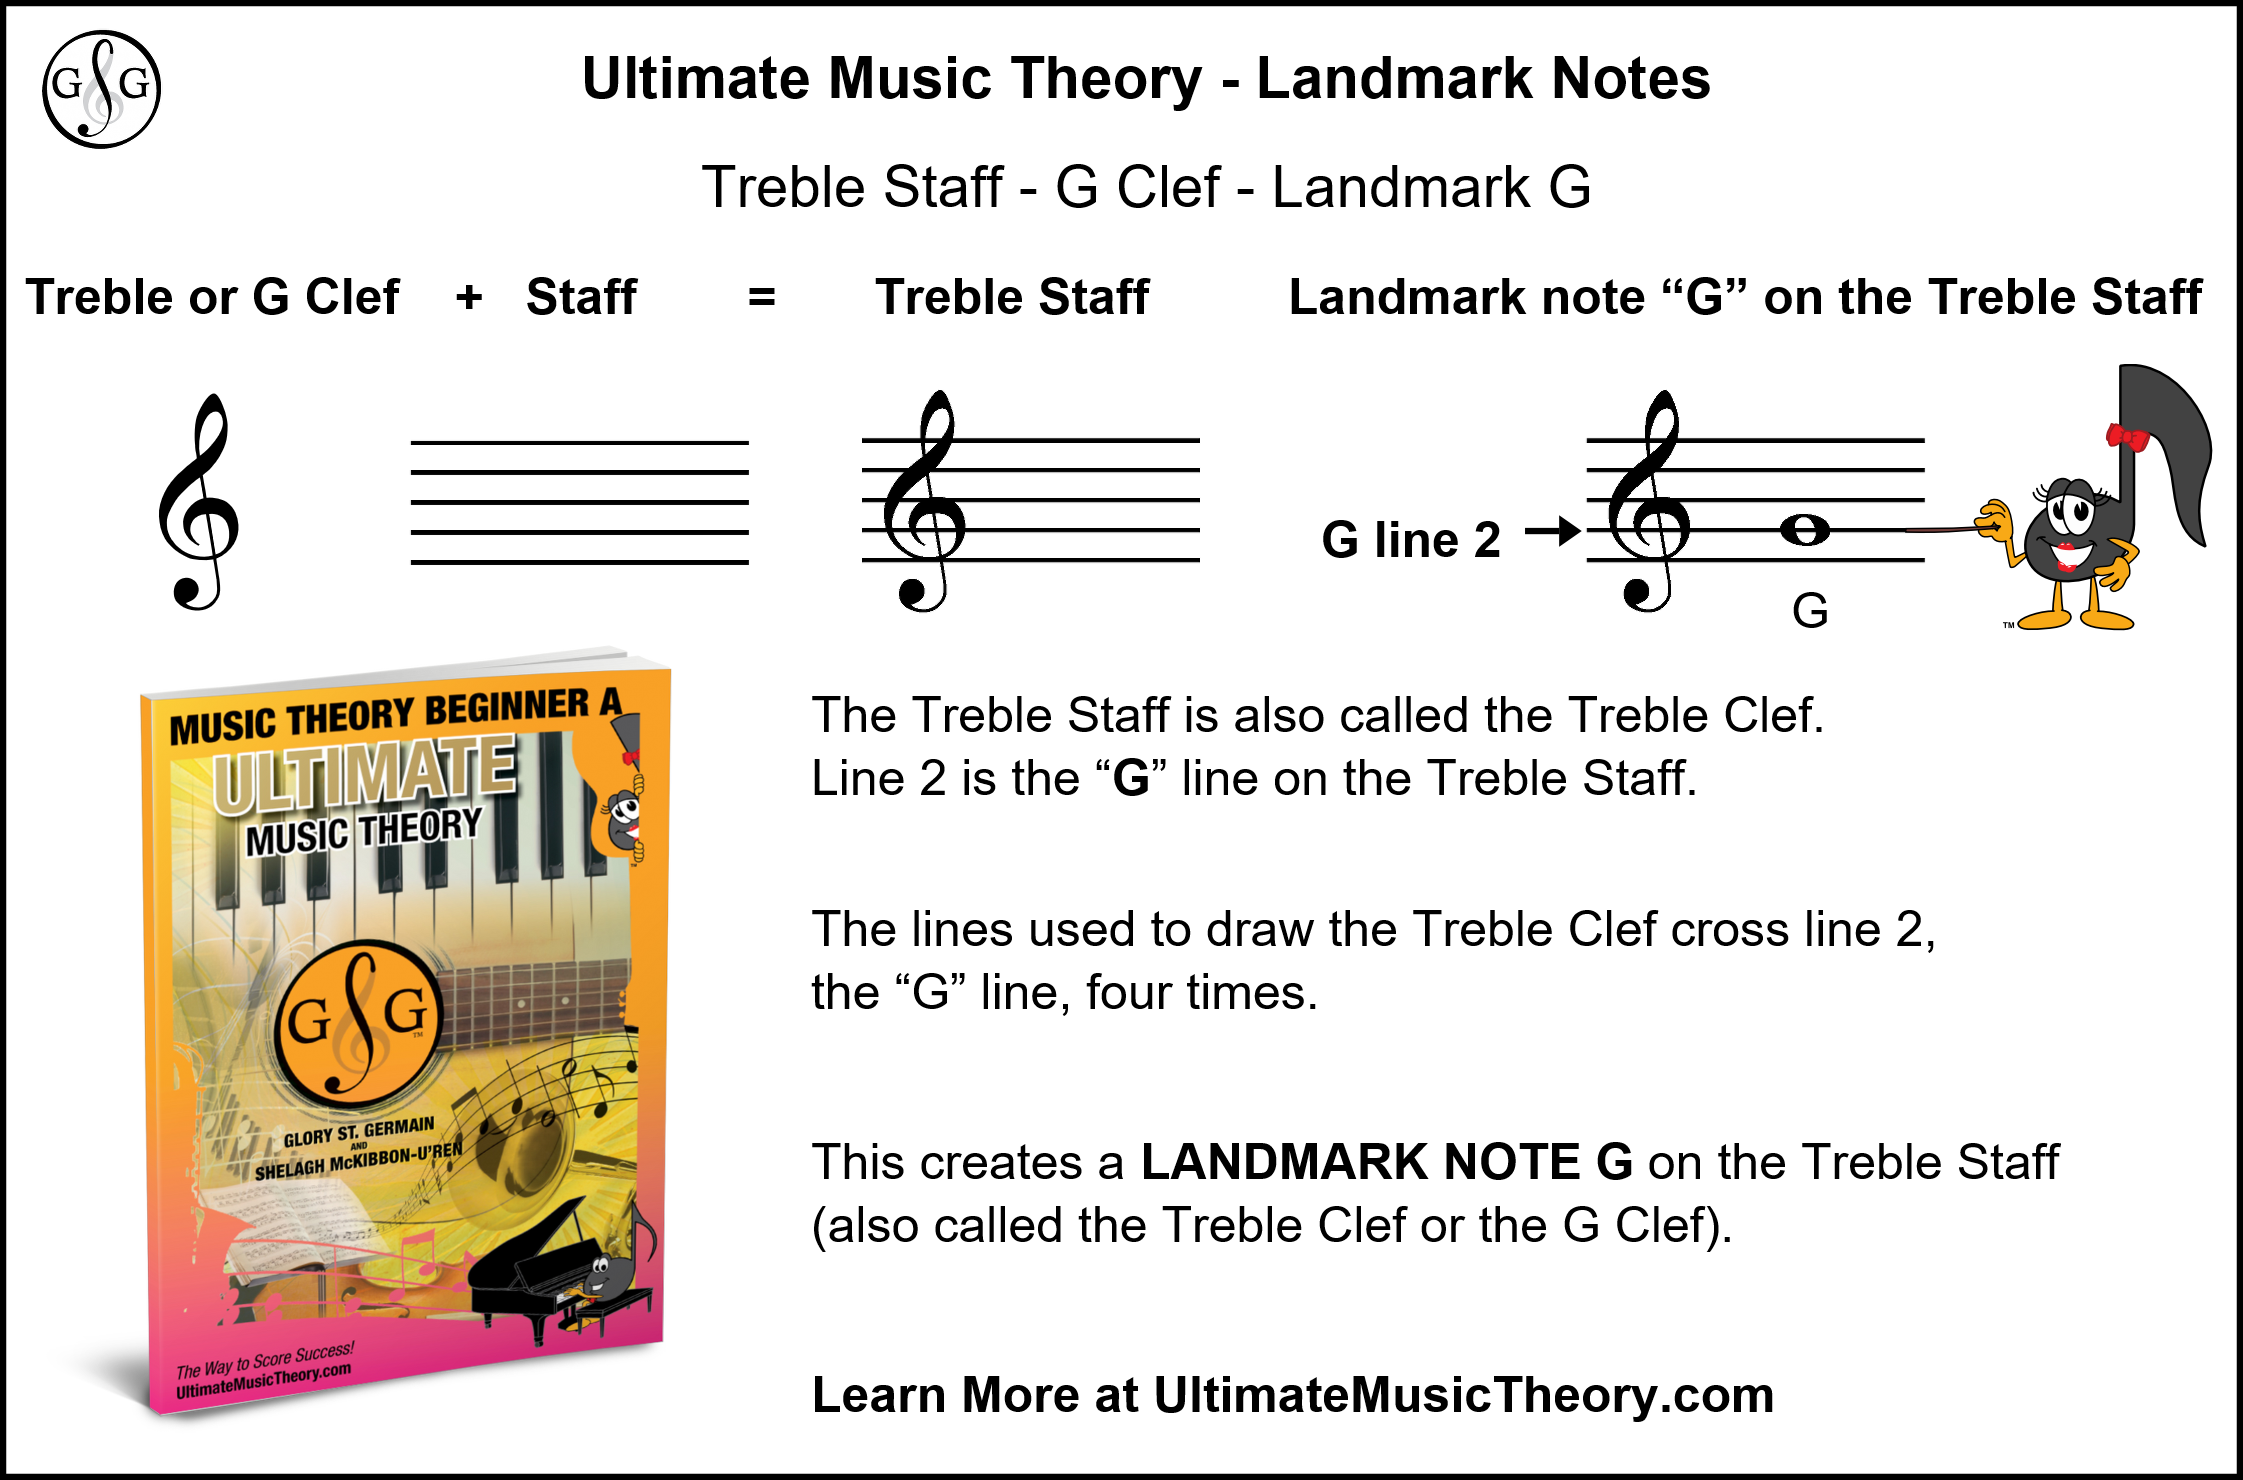 UMT Landmark Notes - Treble G